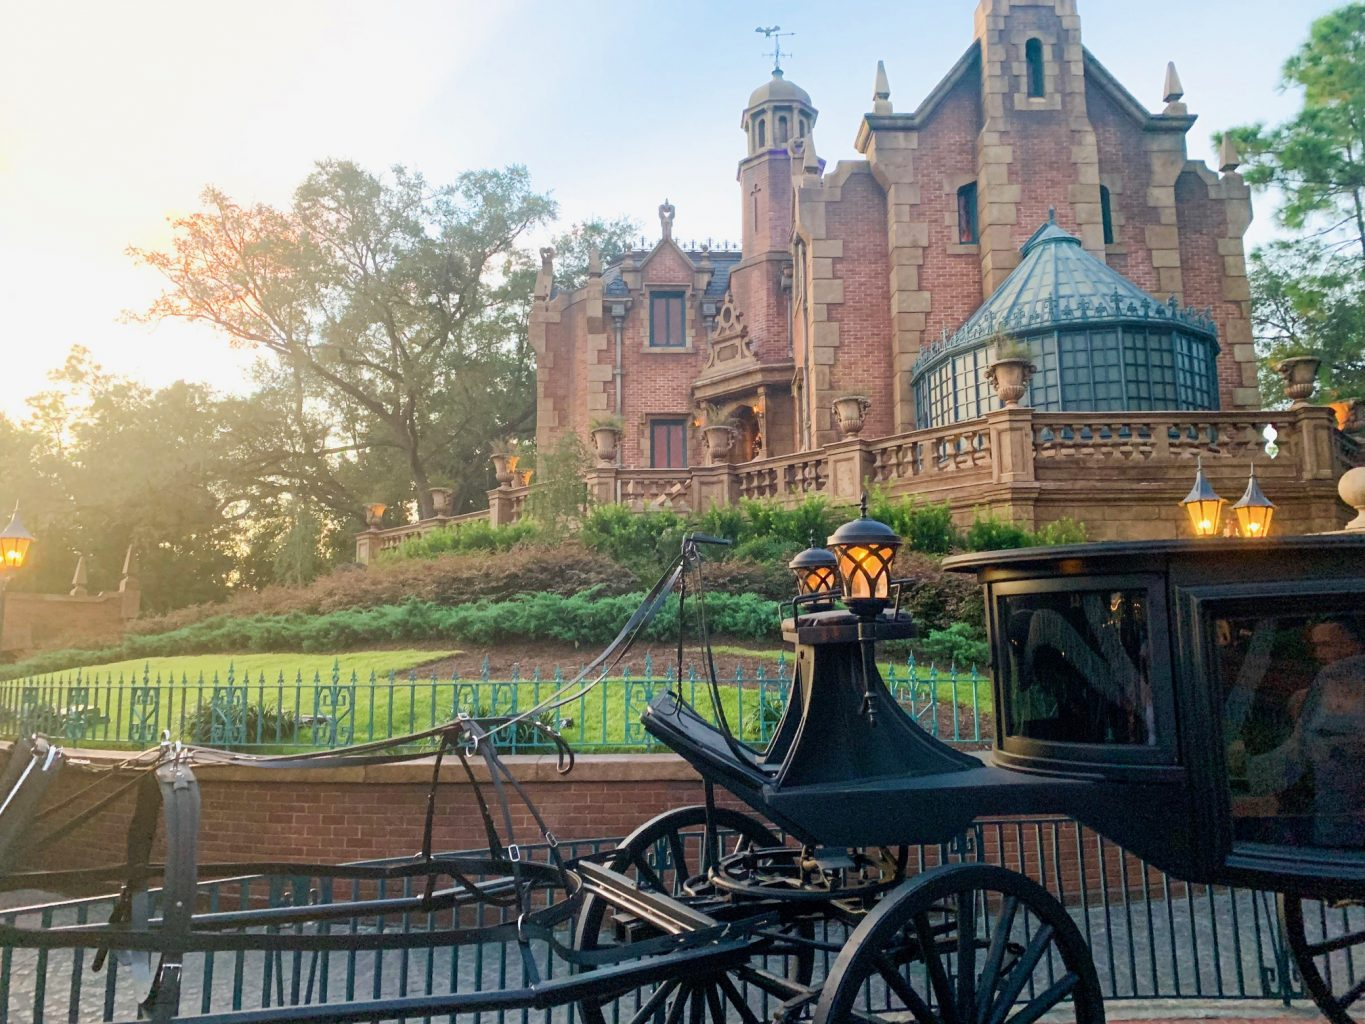 The outside of Haunted Mansion, one of the best Magic Kingdom rides, with a black carriage out front.